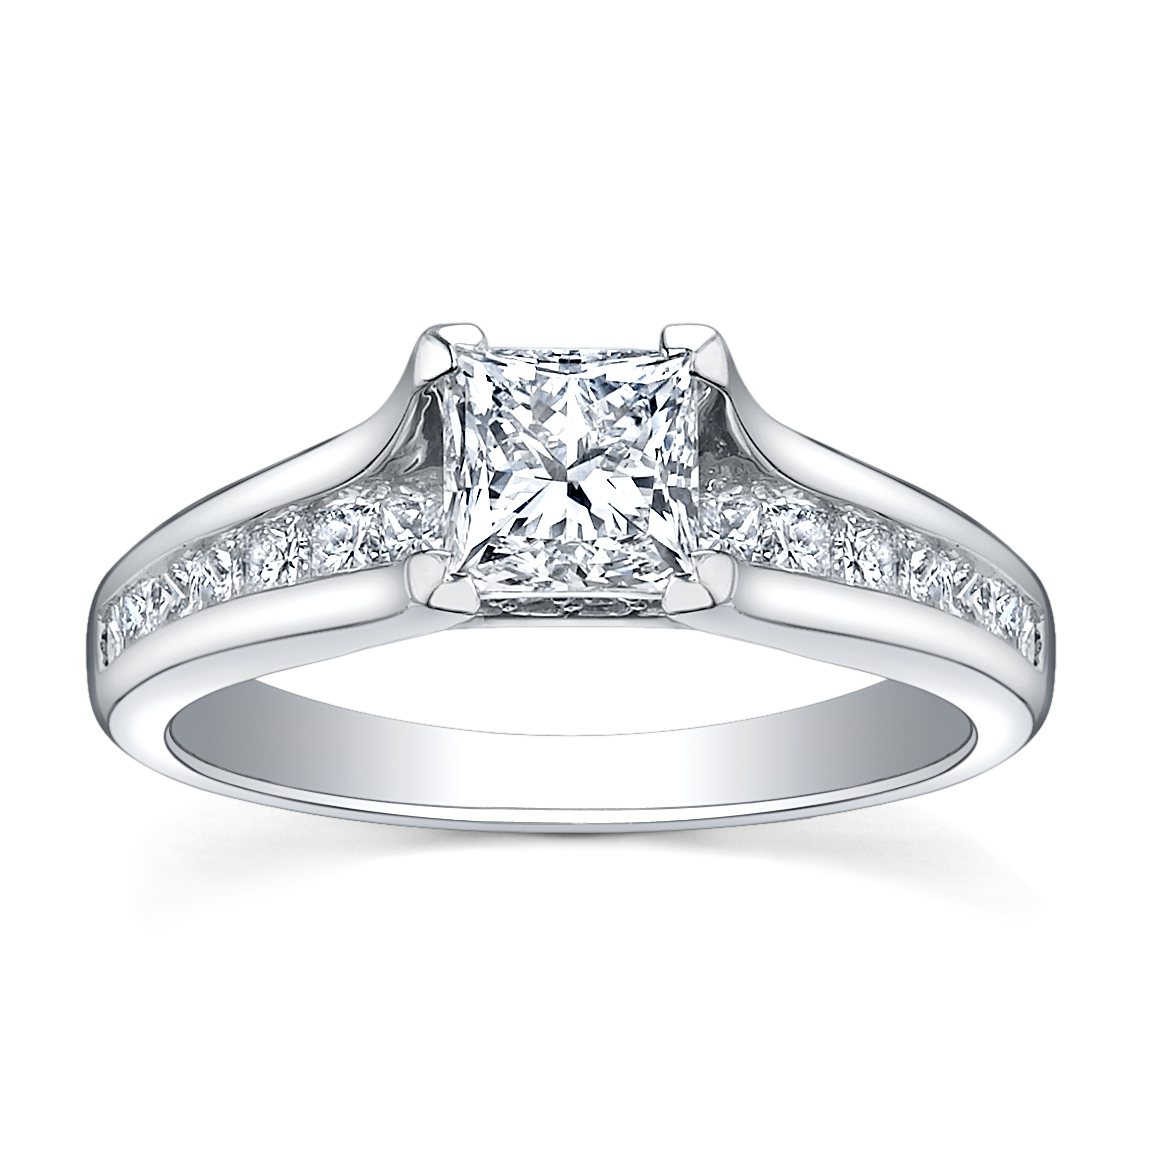 The diamond wedding ring sets wedding ideas and wedding for Cheap bridal wedding ring sets